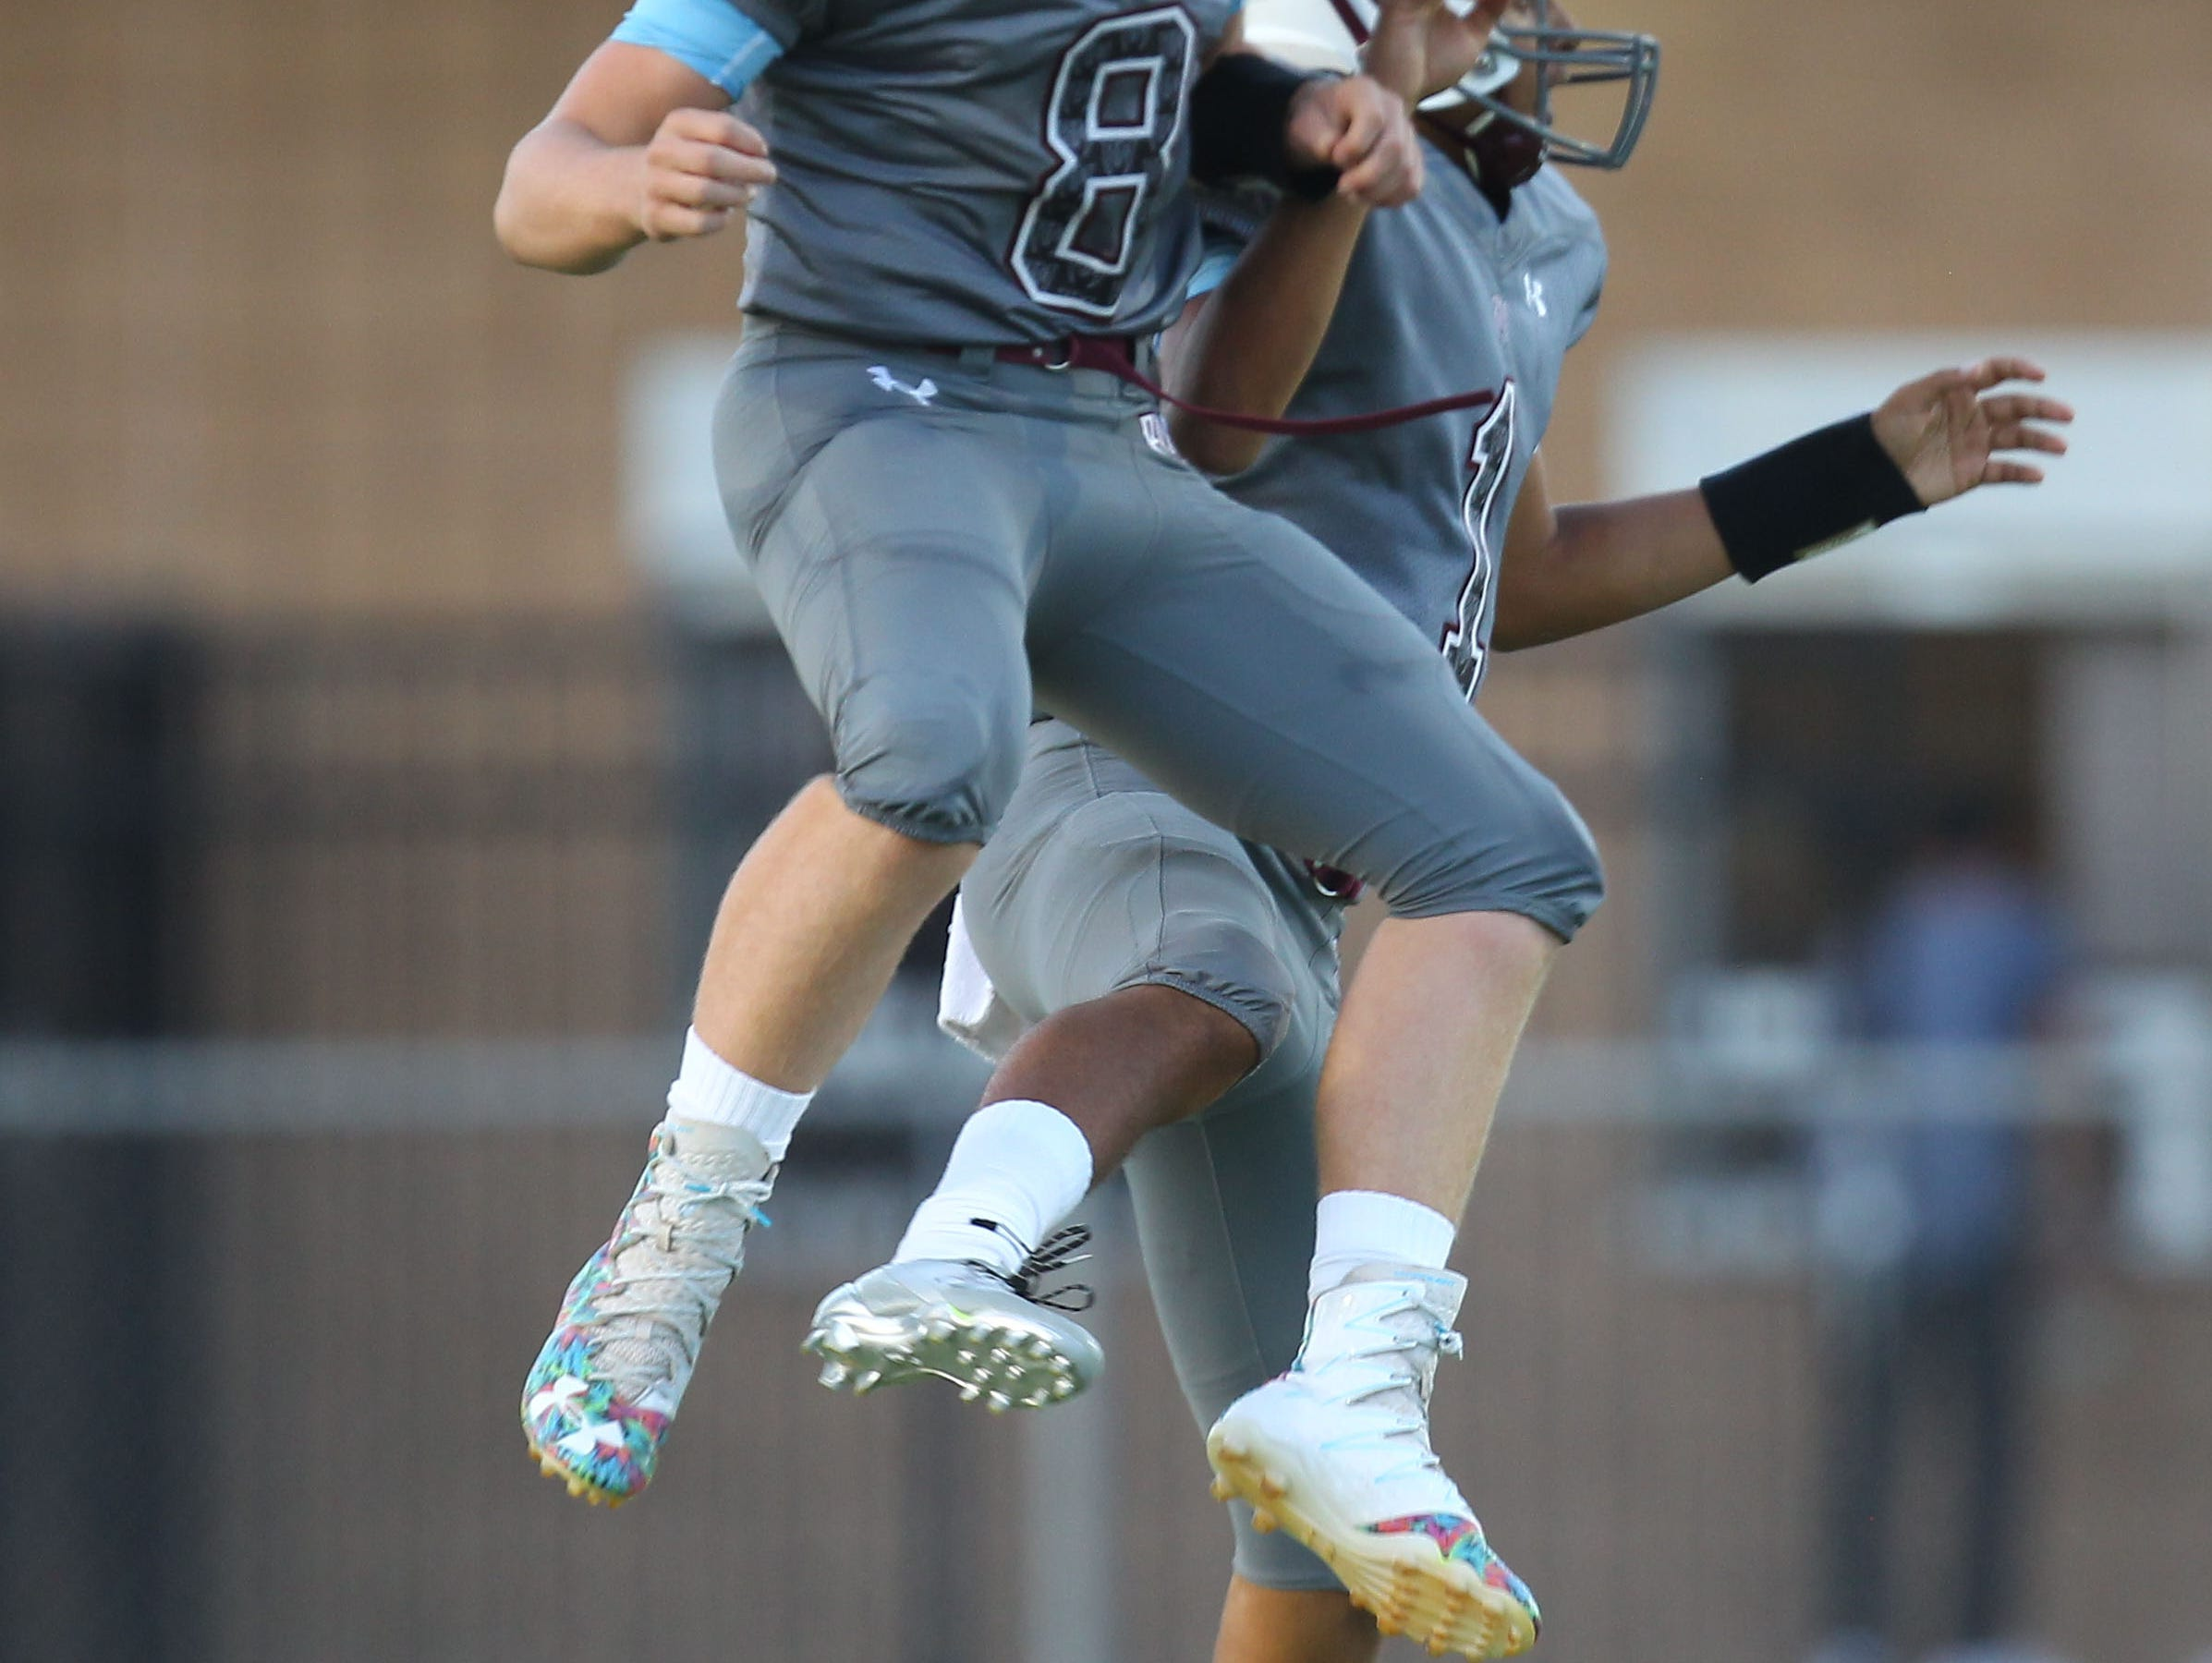 From left Rancho Mirage High School's Kyle Whitefield and Marques Prior celebrate a touchdown at home against Beaumont.